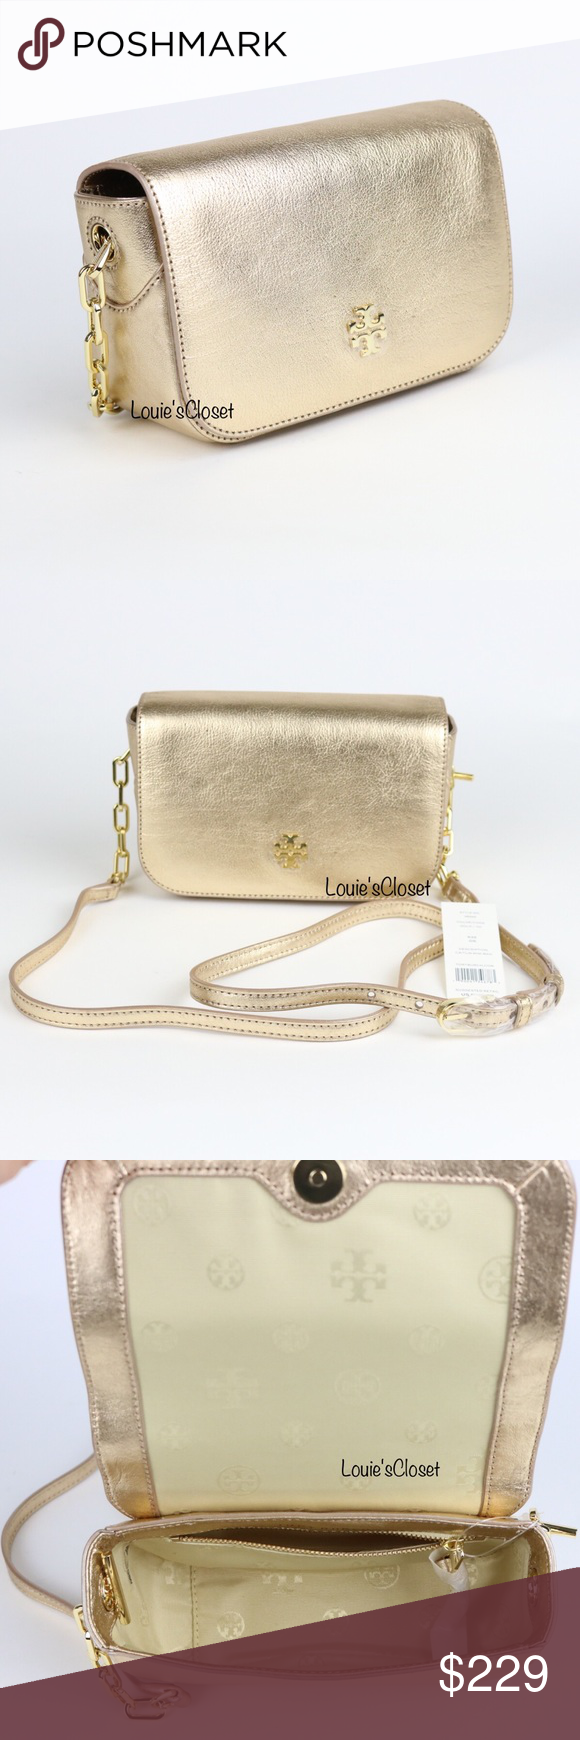 0aba133b6a90 Tory Burch Caitlin Mini Bag Tory Burch Caitlin Mini Bag   Gold metallic  leather   Zip